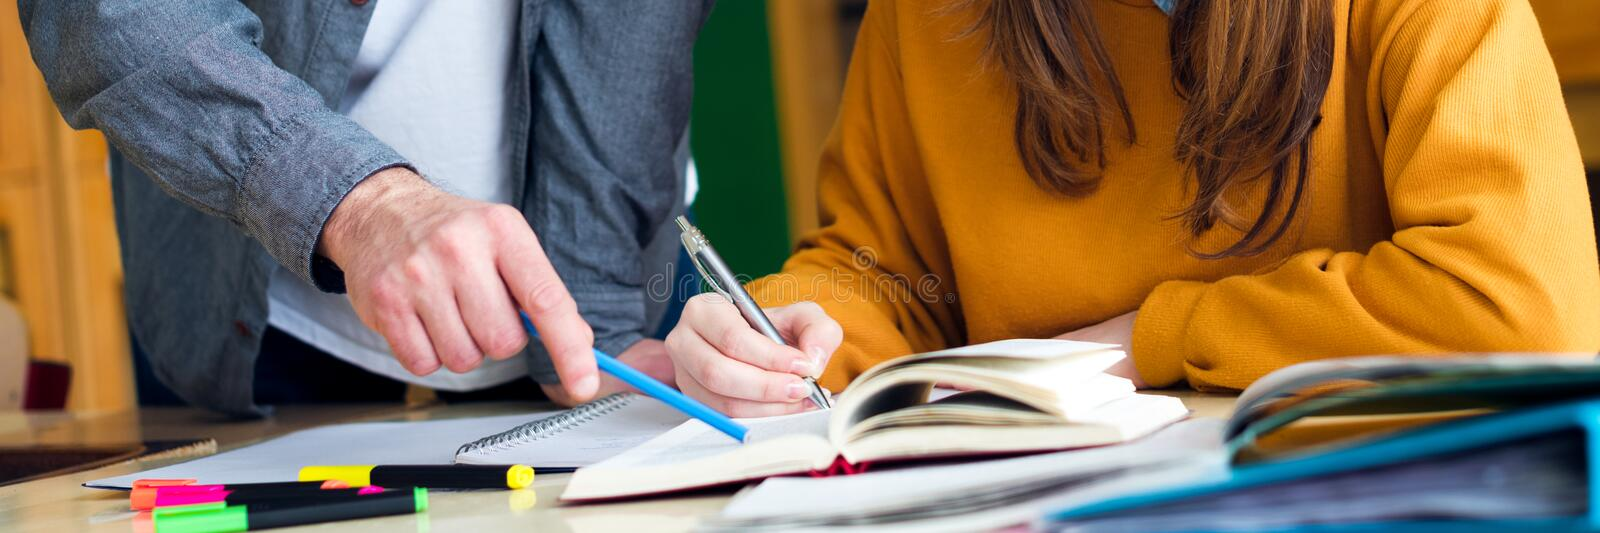 Young teacher helping his student in chemistry class. Education, Tutoring and Encouragement concept. royalty free stock photos